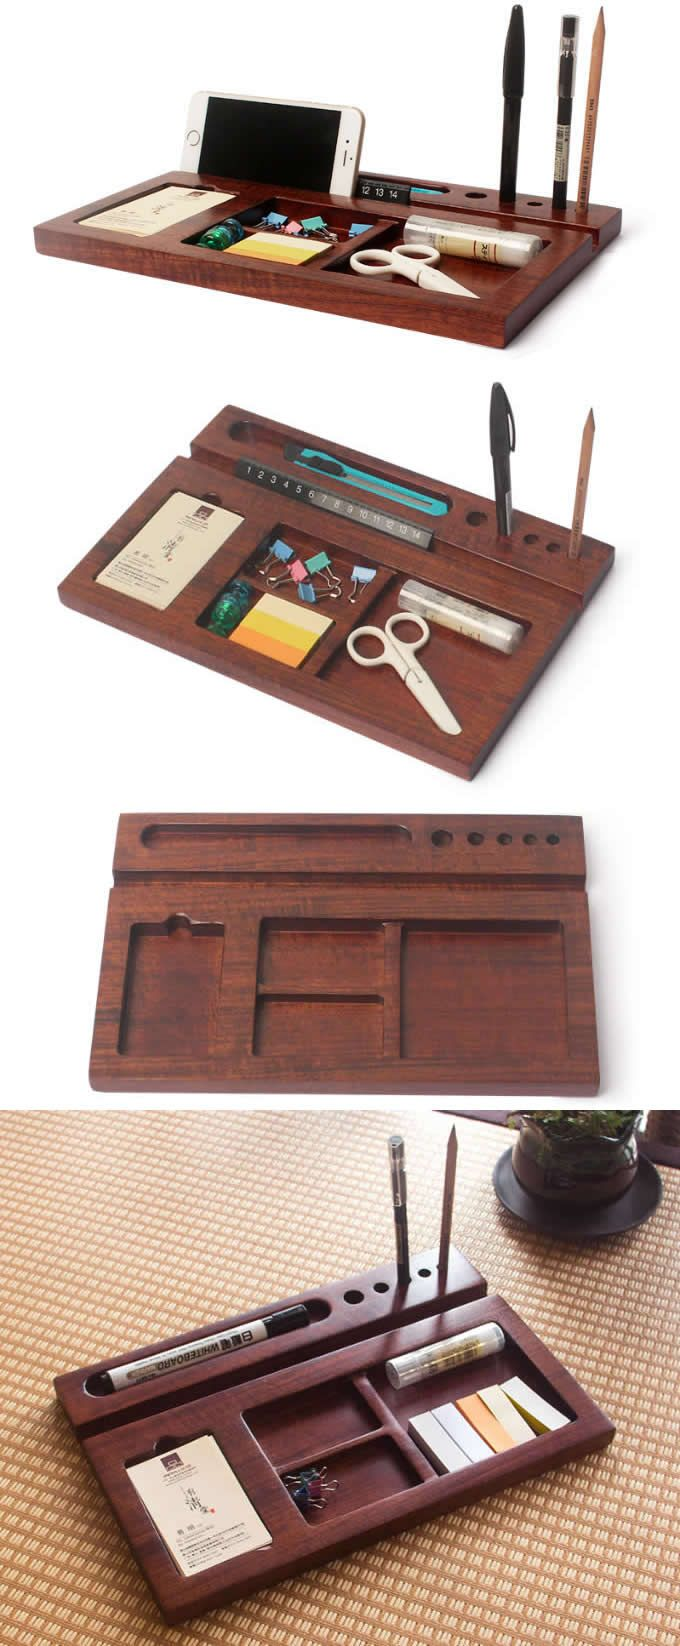 Bamboo Wooden Office Desk Stationery Organizer Tray Pen Pencil Holder Stand Iphone Ipad Smart Phone Woodworking Storage Woodworking Techniques Woodworking Lamp